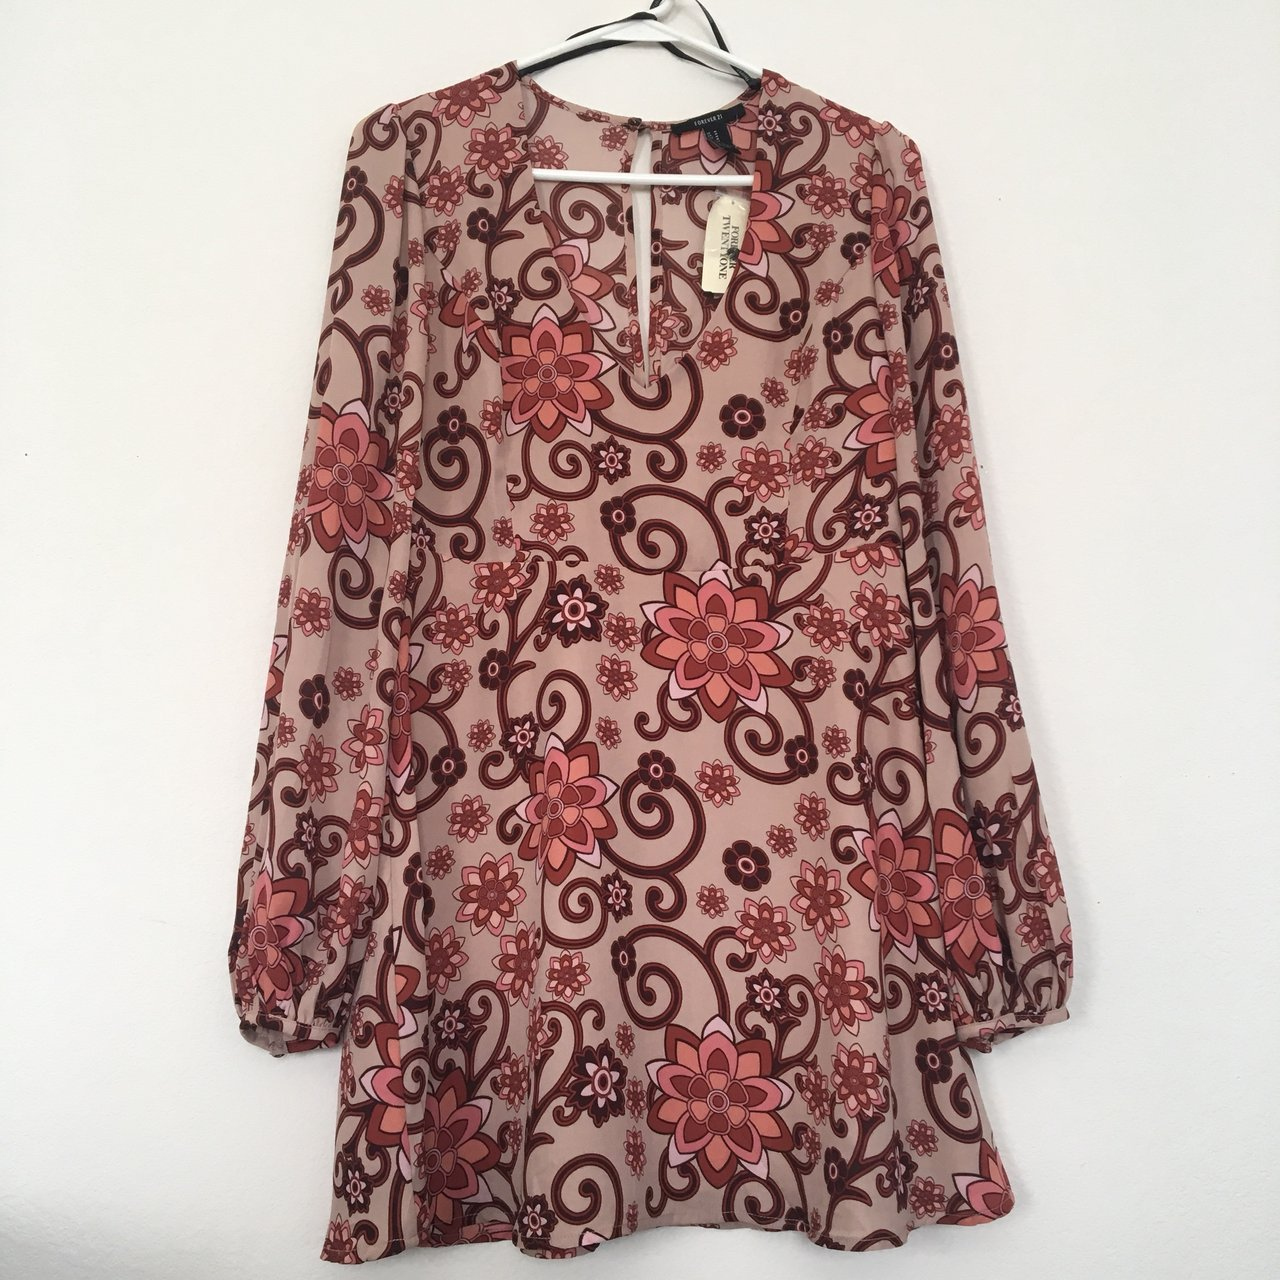 70s style dress brand new with tags! beautiful floral print - Depop d5b908bec